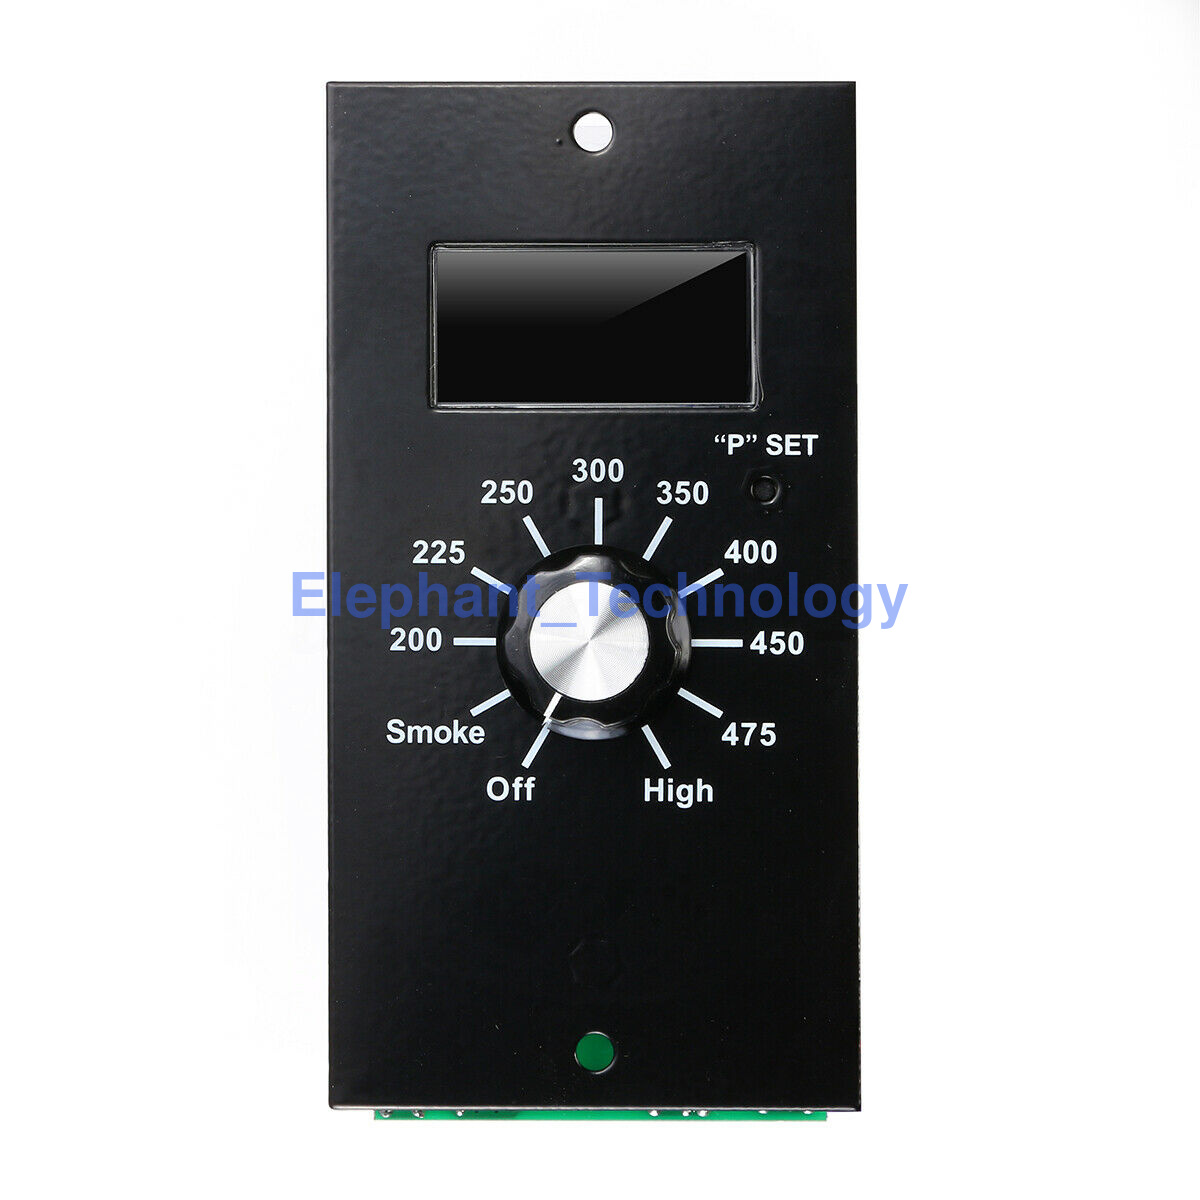 Details about Awesome Digital Thermostat Control Board For Pit Boss Wood  Pellet Grills BBQ